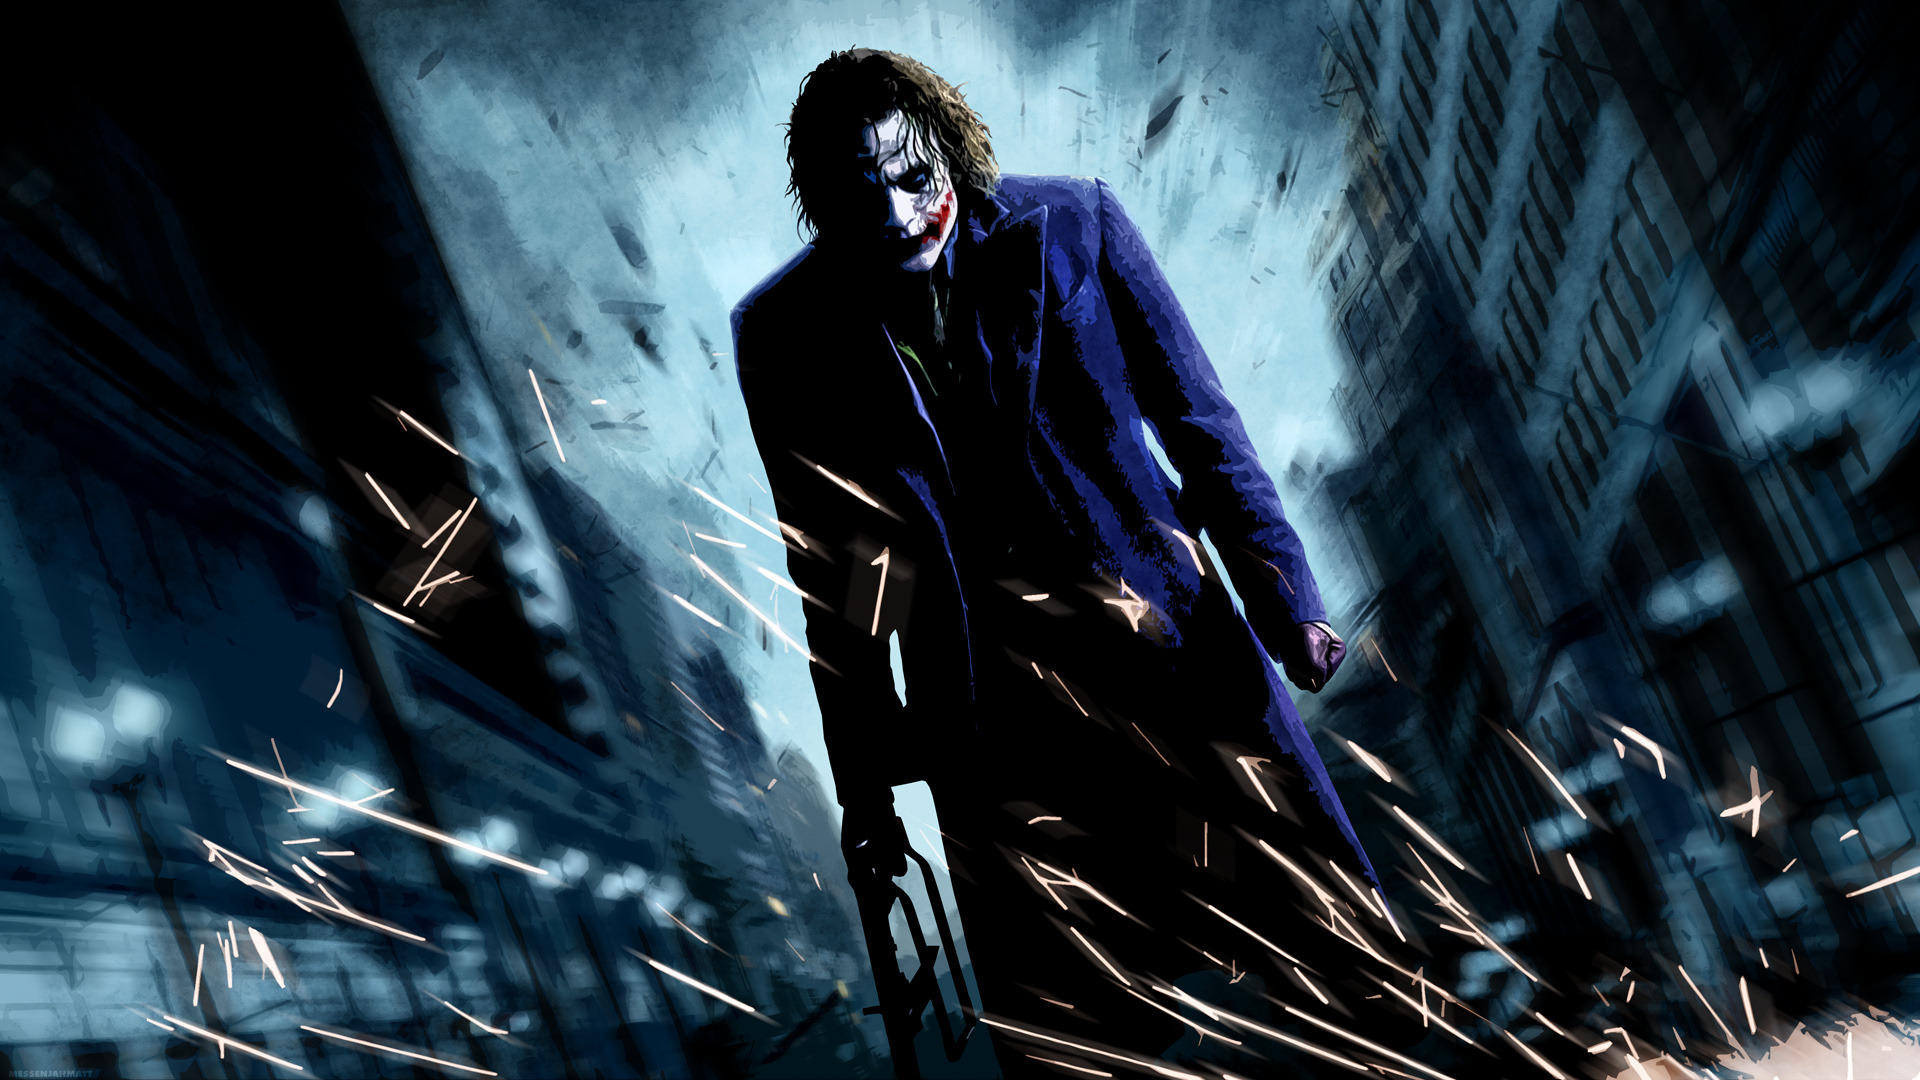 34 buenisimos wallpapers del guason thejoker im genes for Joker immagini hd